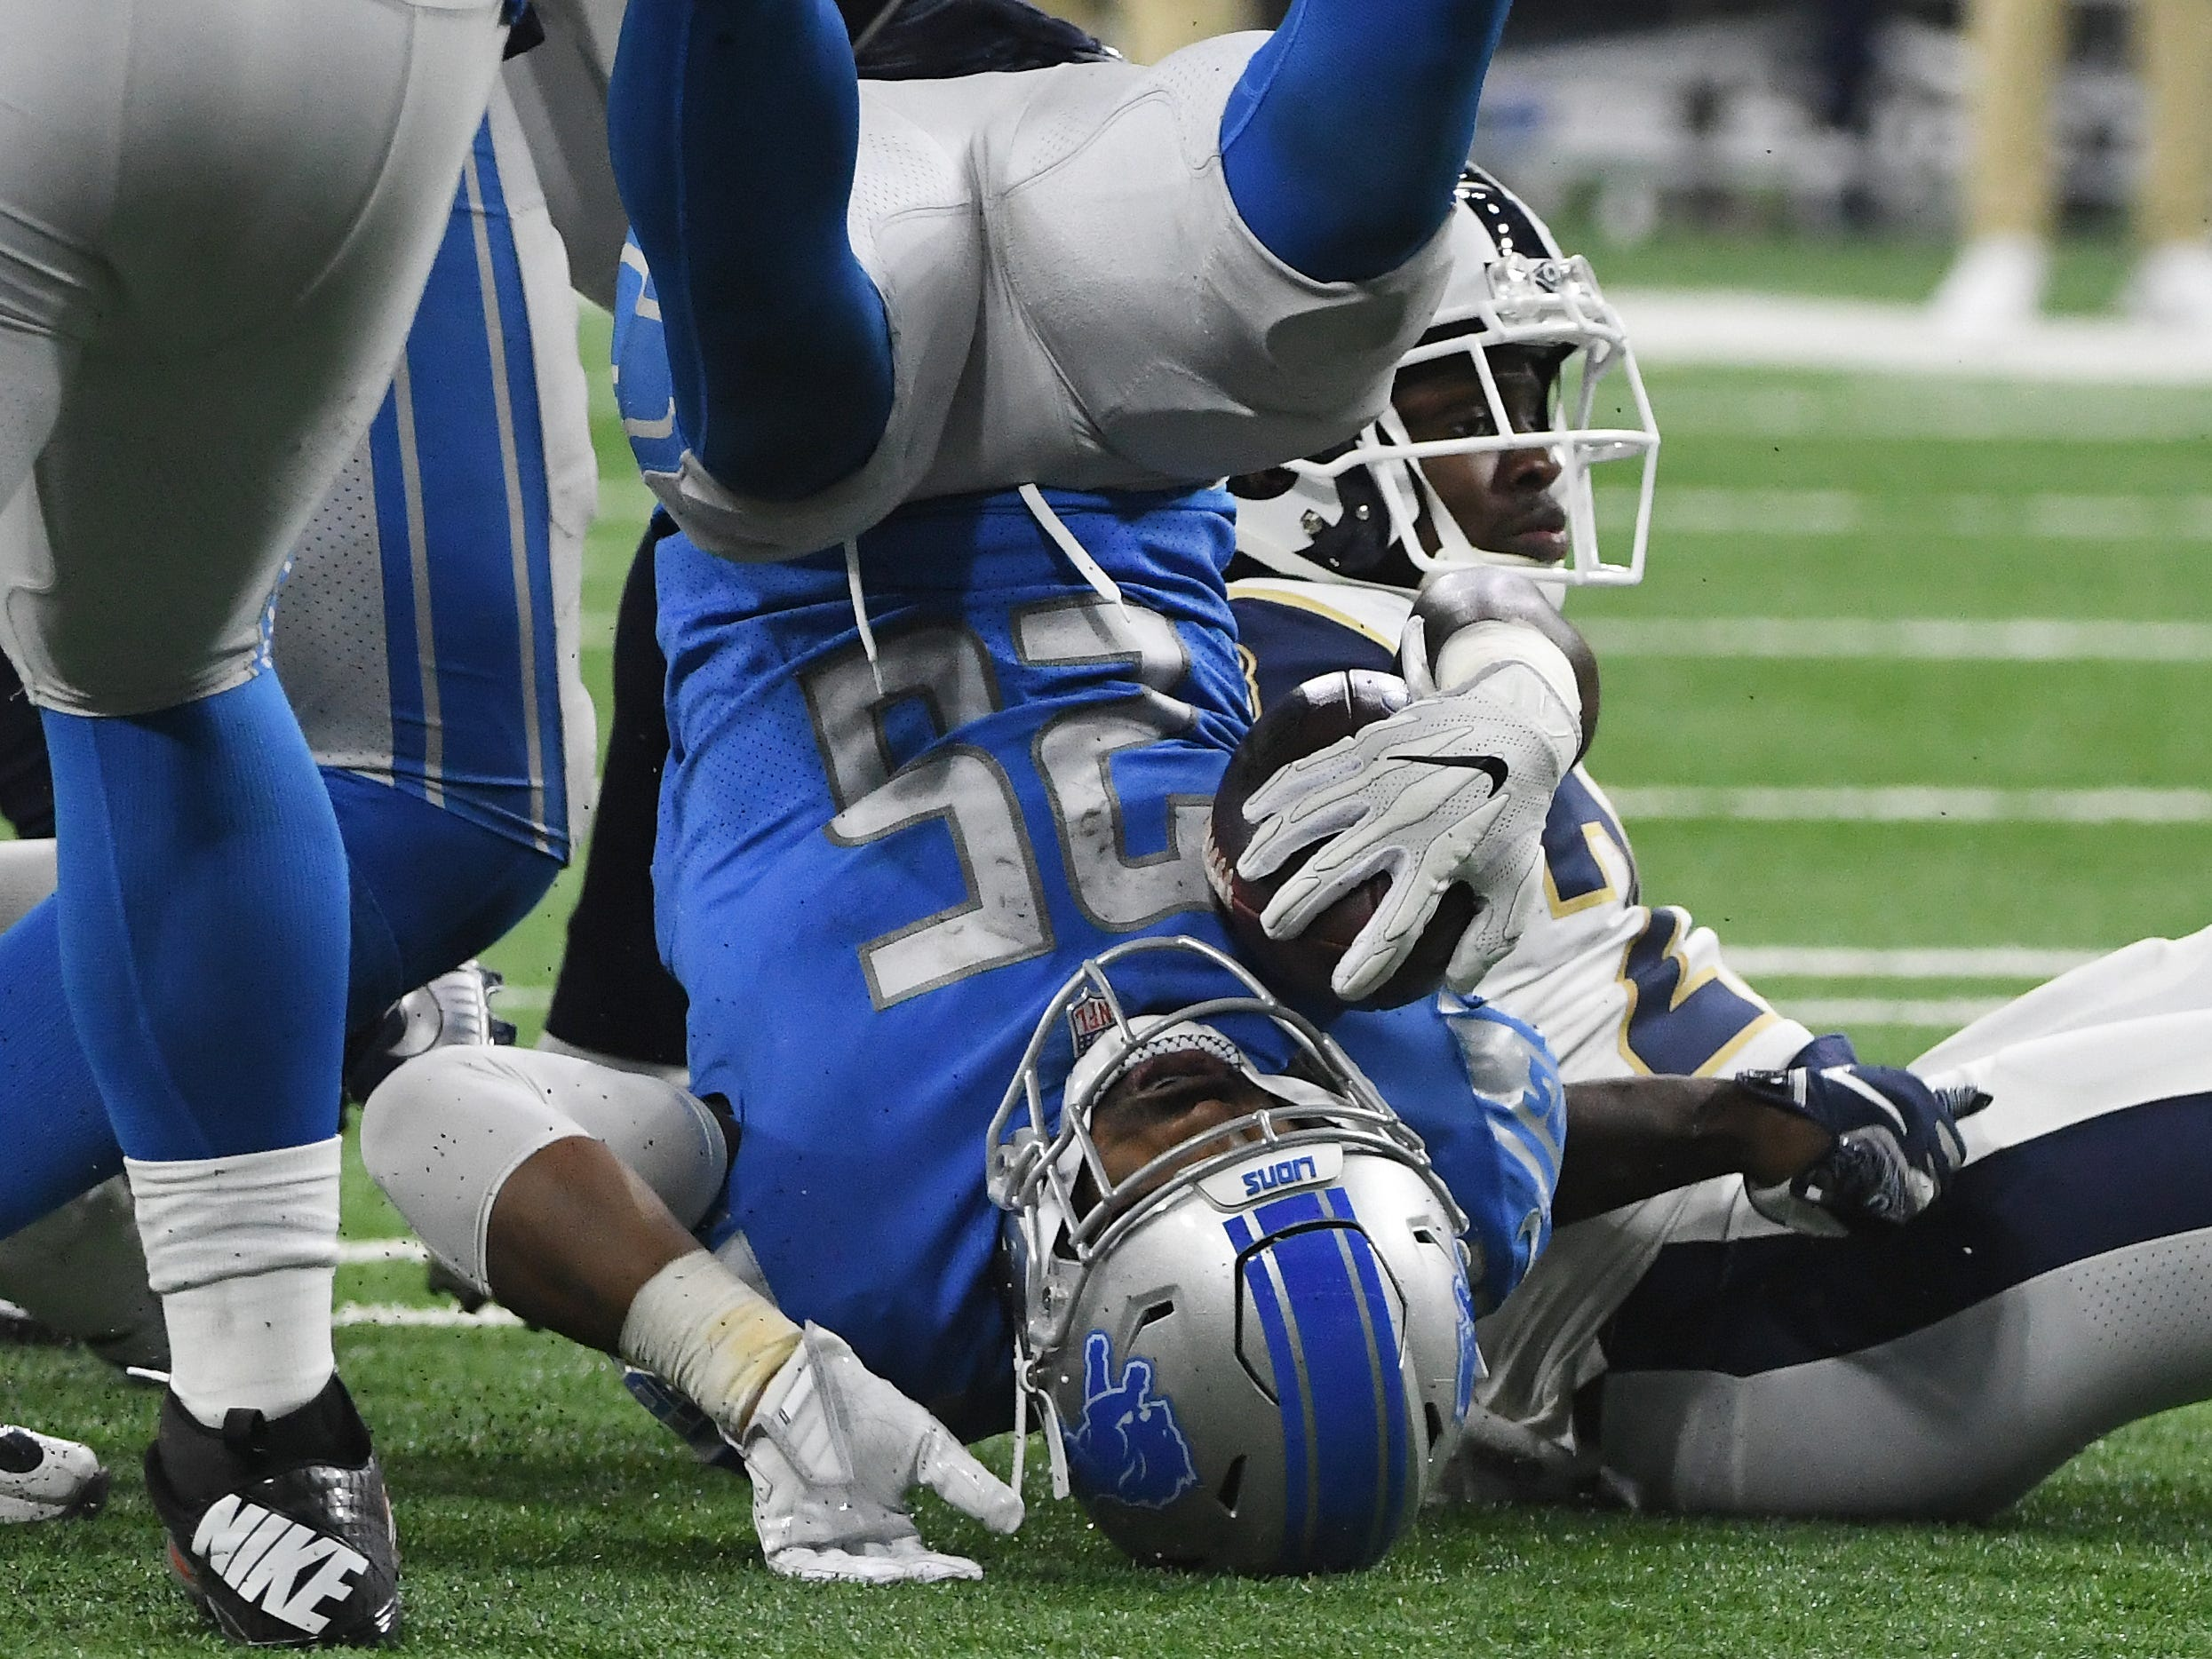 Lions running back Theo Riddick is upended after a run in the third quarter.